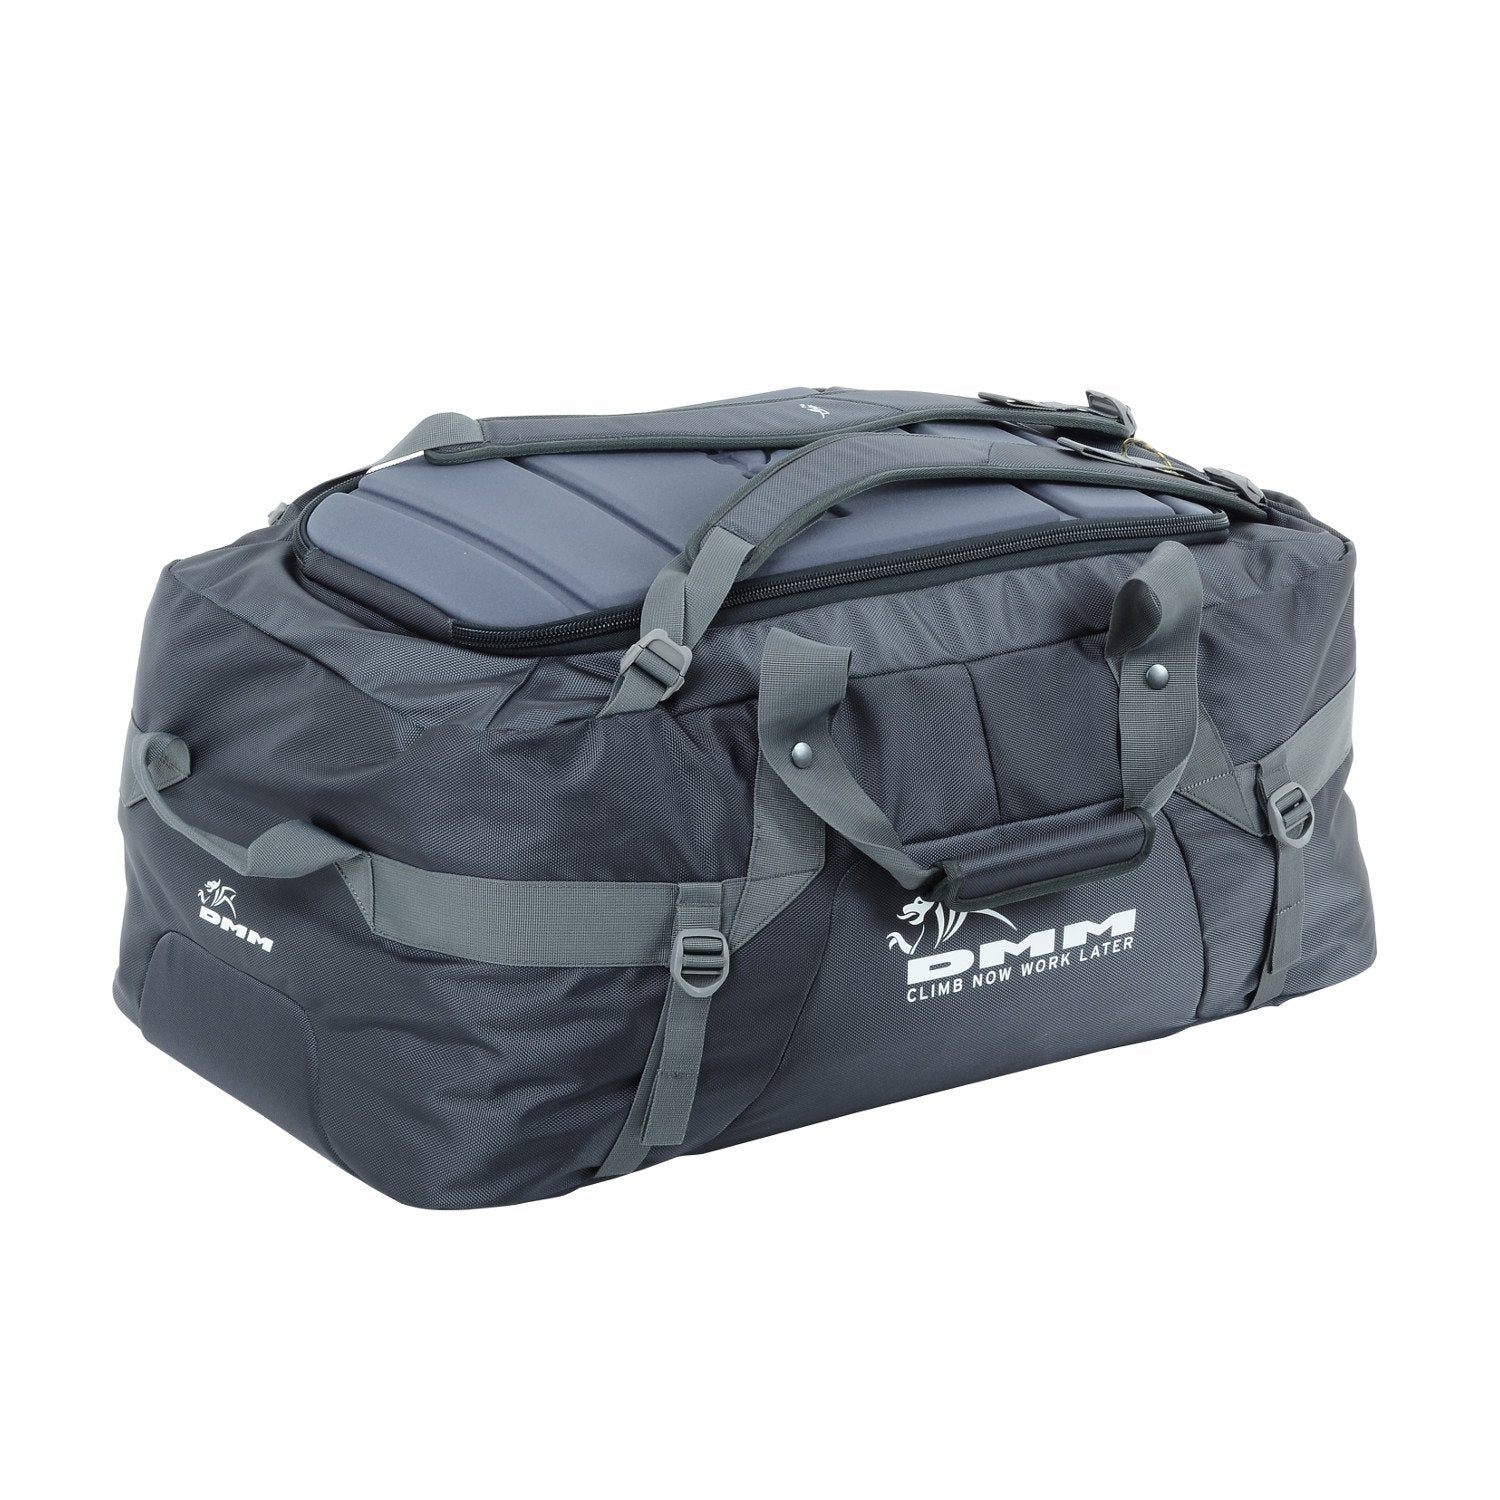 DMM Void Duffel 100L shown flat in carry mode